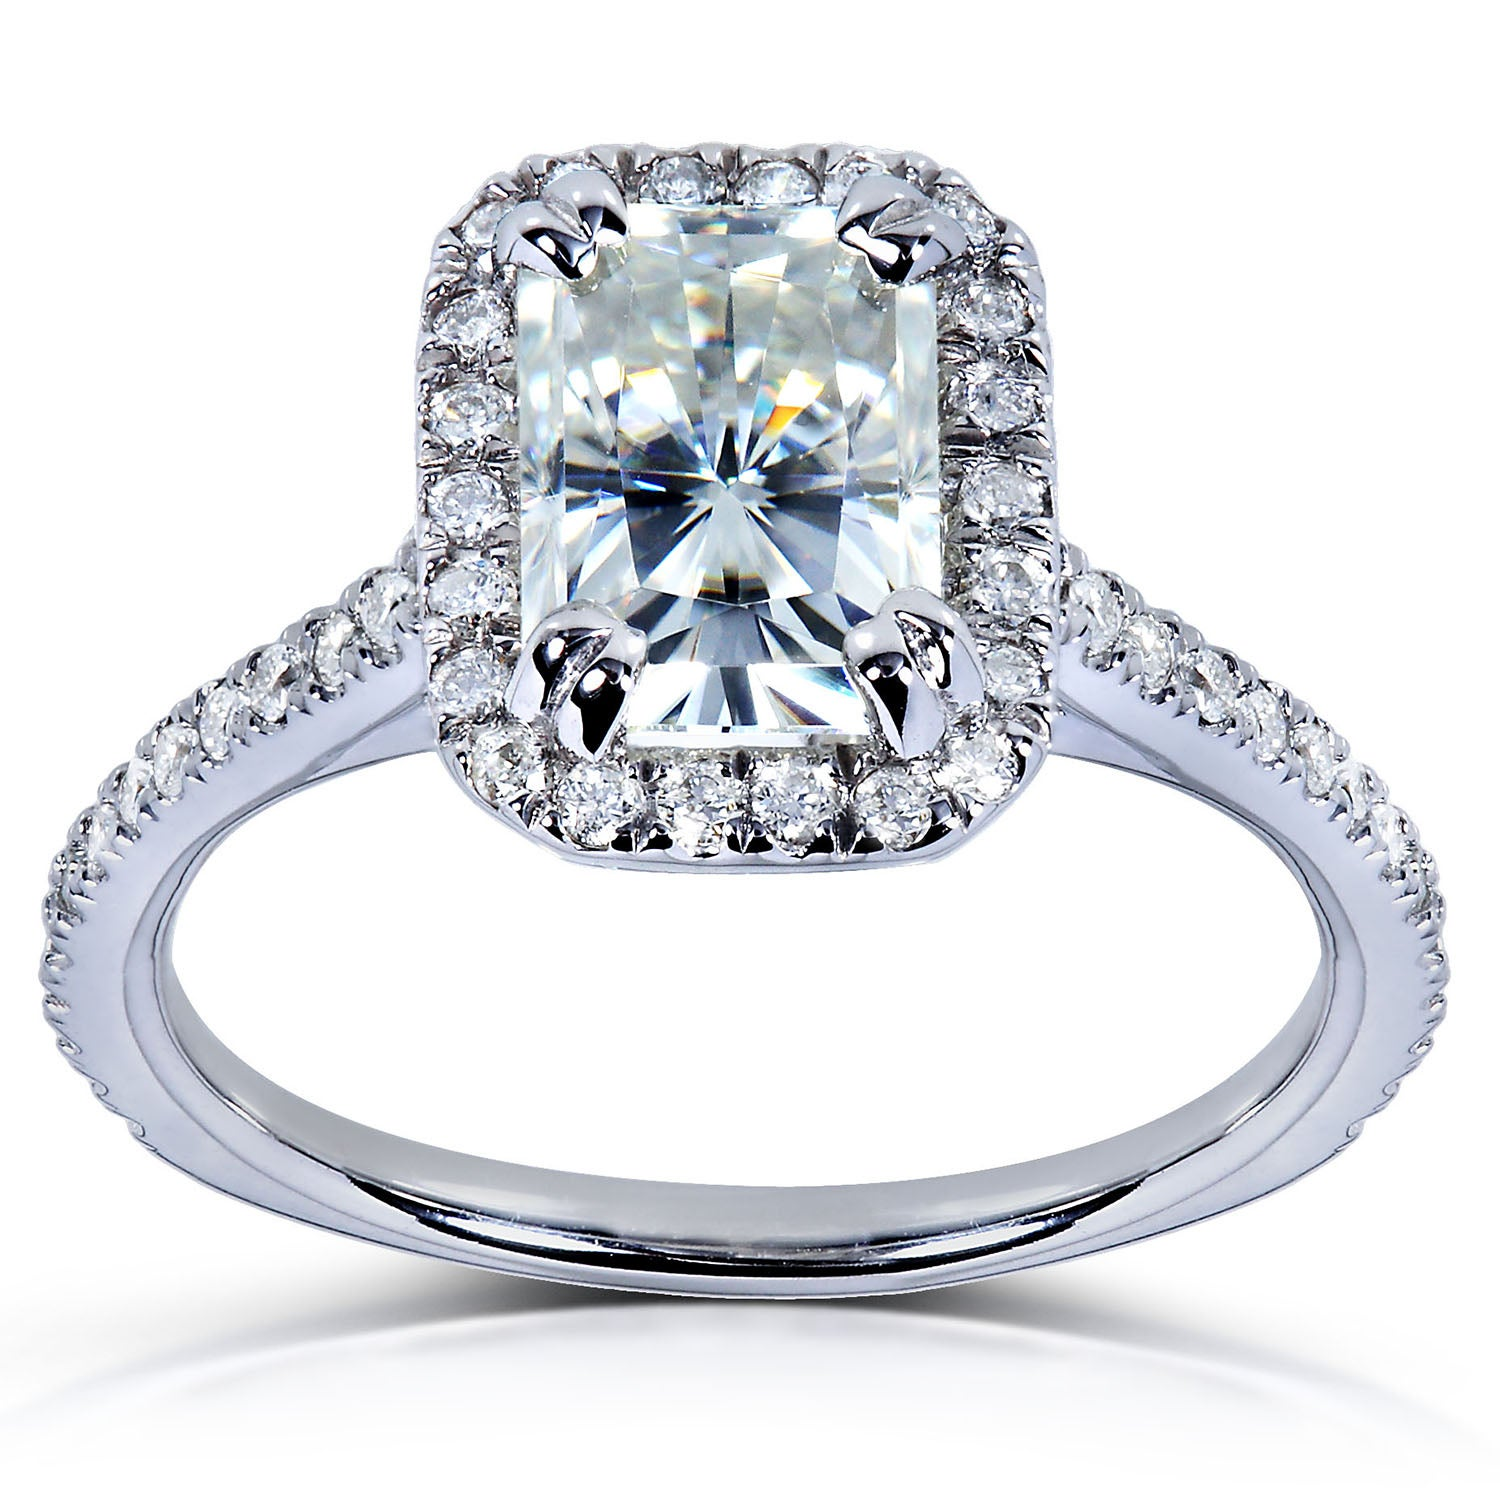 14k Gold Radiant-cut Moissanite and 1/4ct TDW Diamond Engagement Ring (G-H, I1-I2) at Sears.com